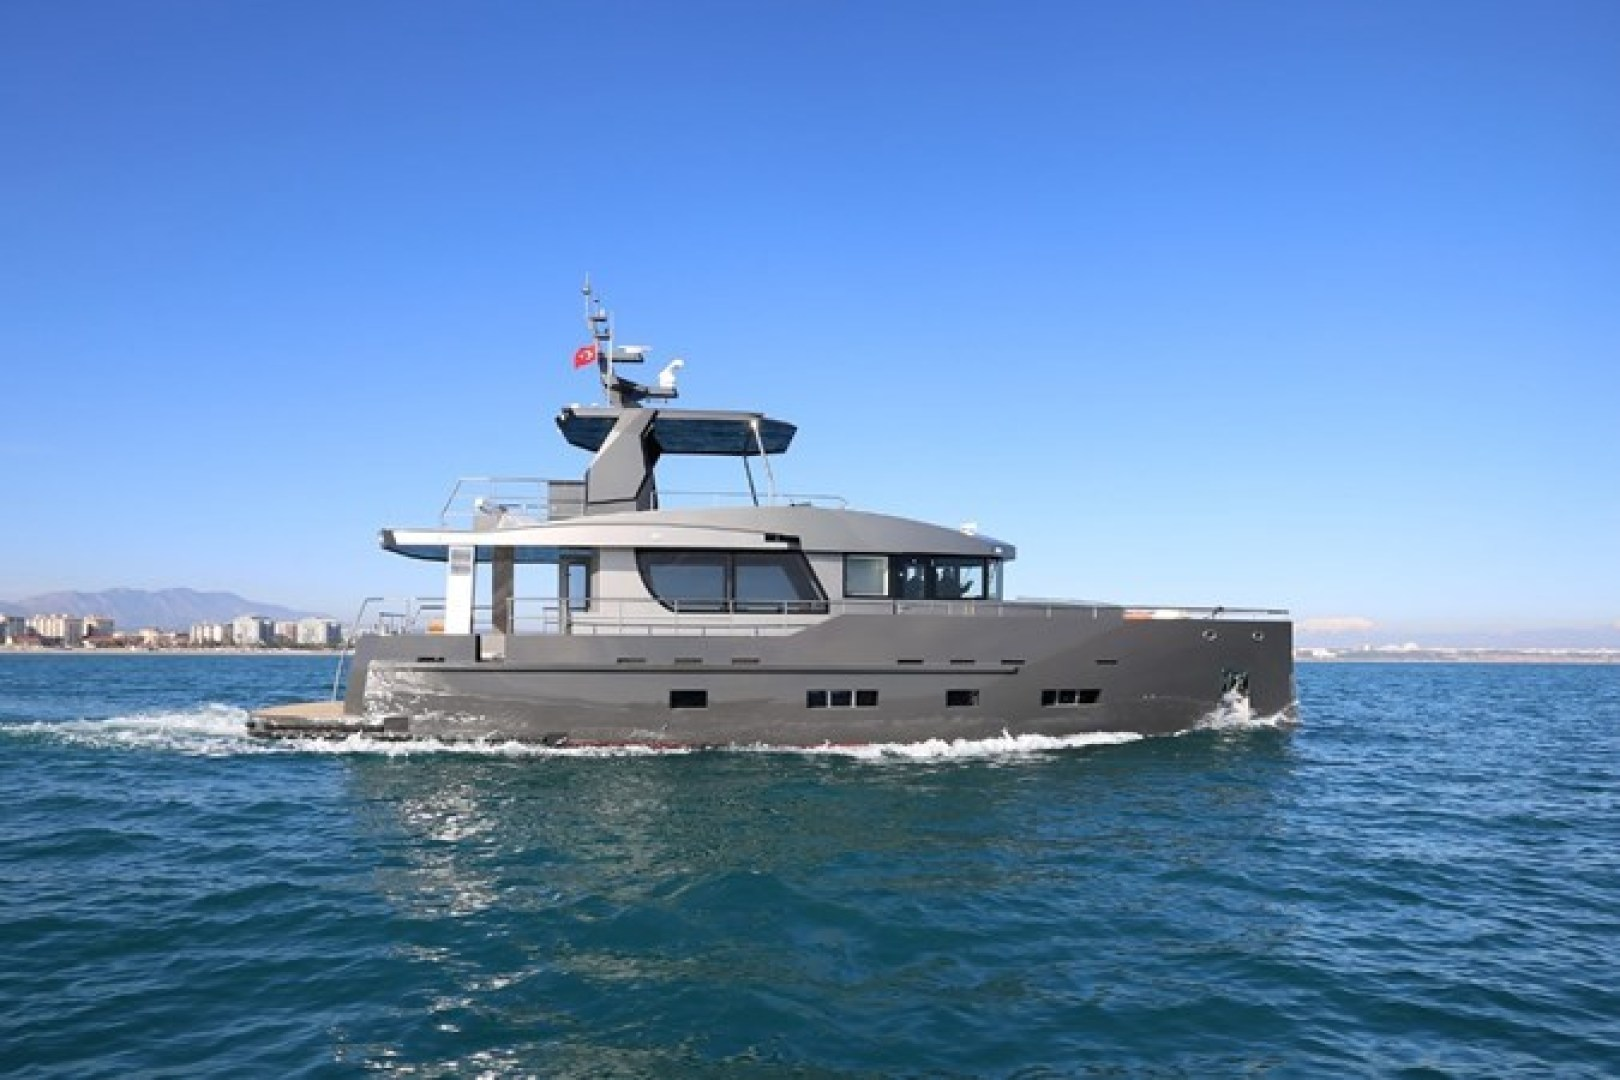 70' Bering 2019 Expedition Yacht Expedition Yacht